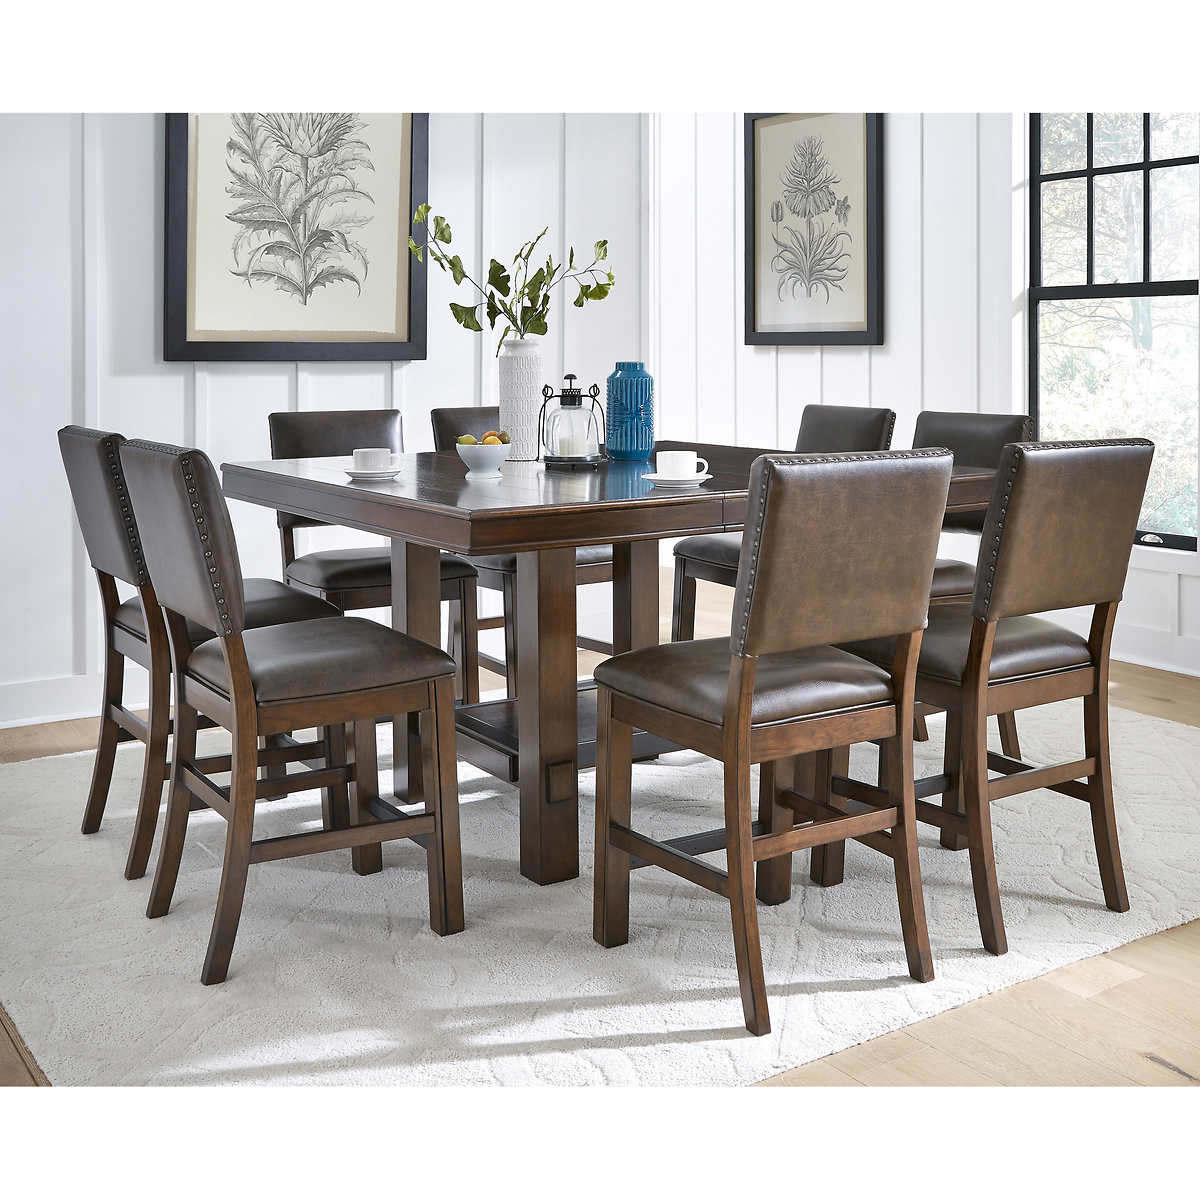 Sable 9 Piece Counter Height Dining Set